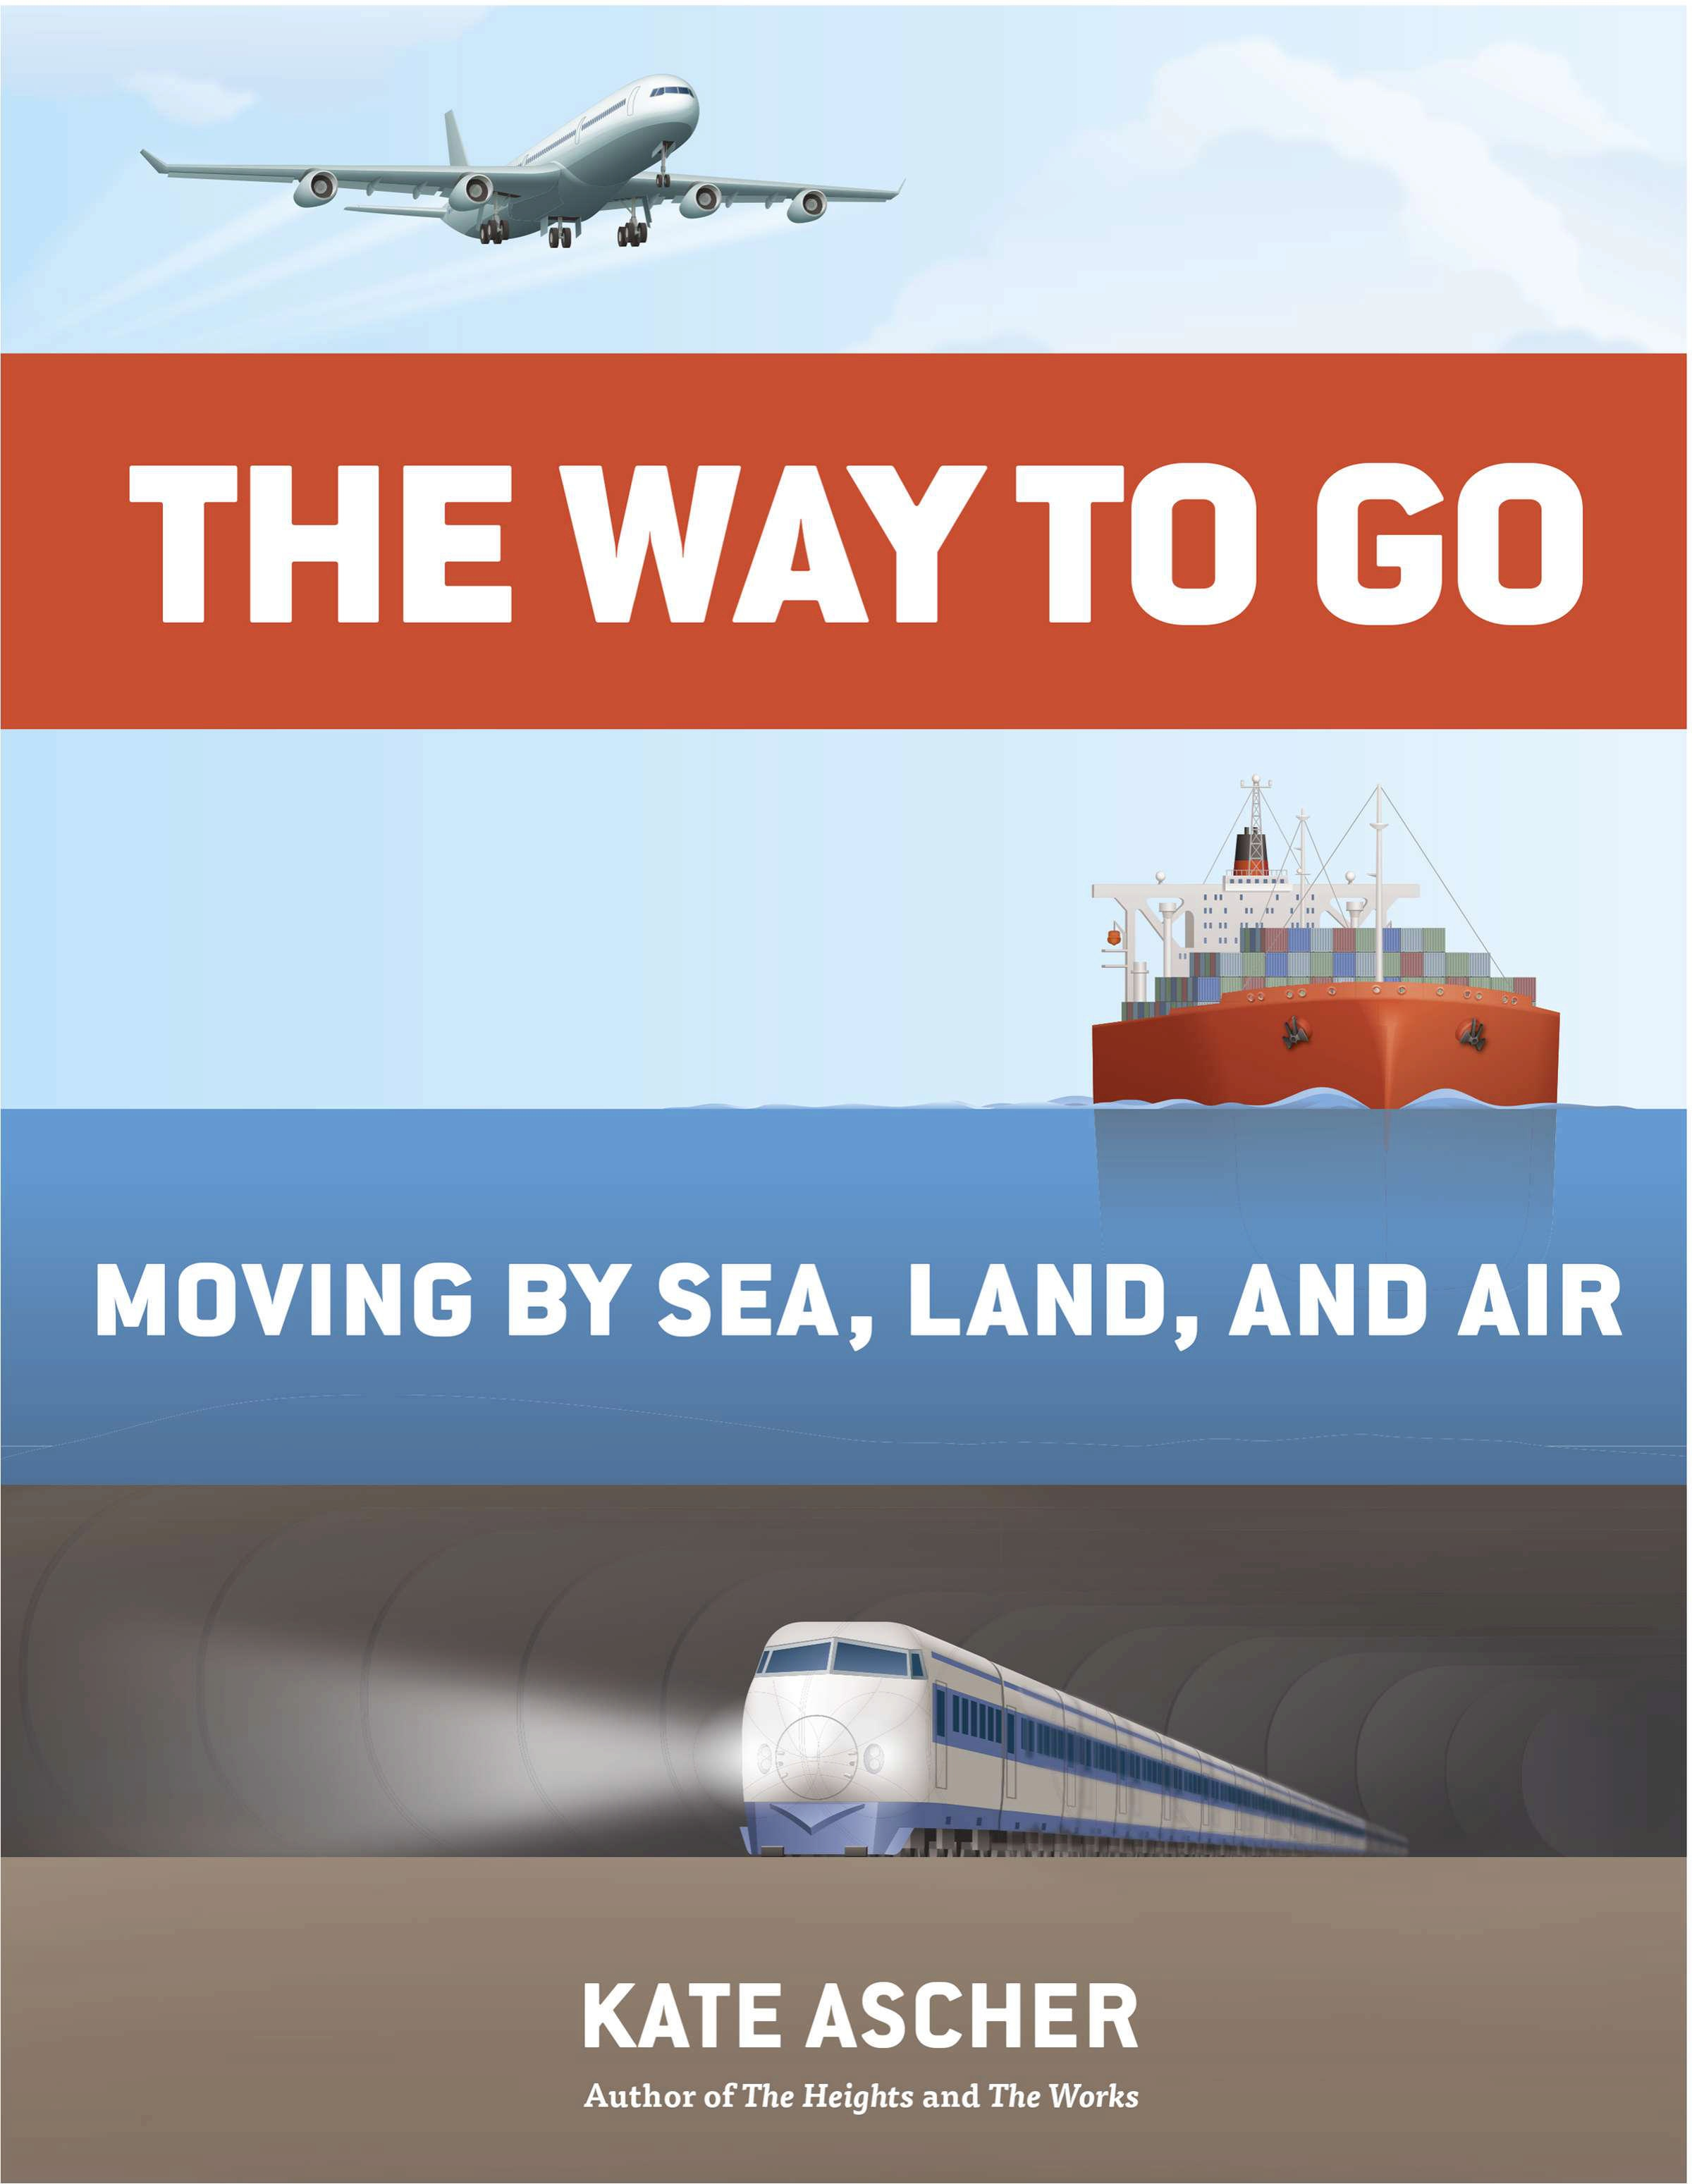 The Way to Go: Moving Through Sea, Land, and Air